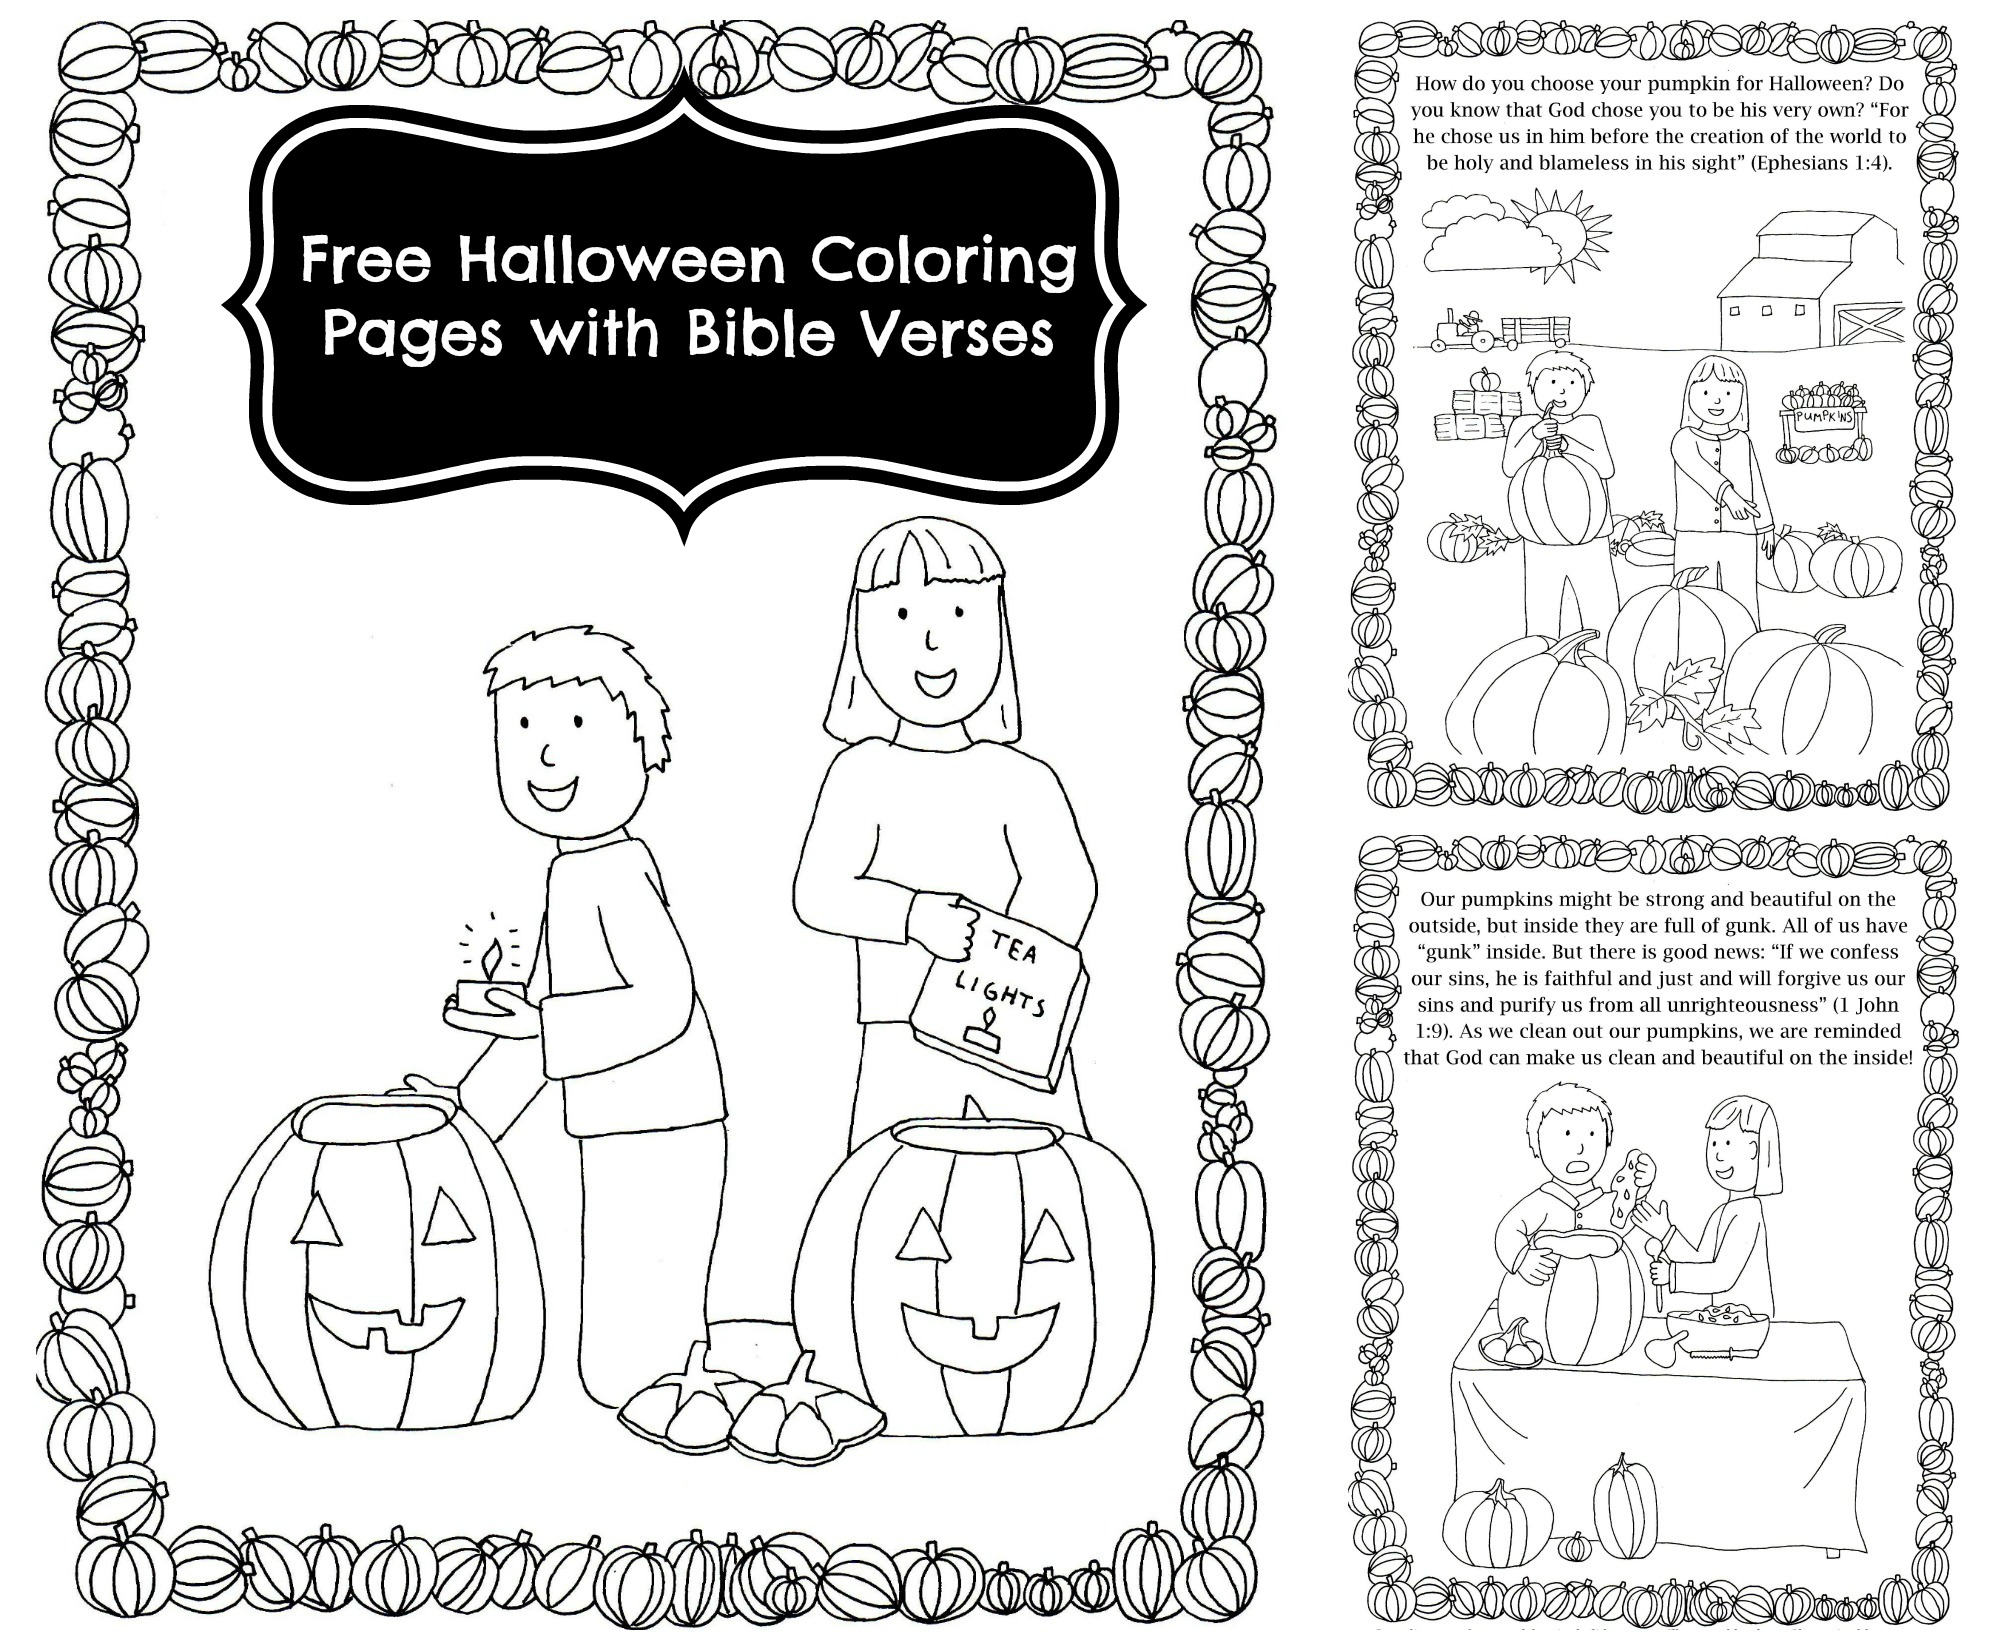 Coloring pages with bible verses - Pumpkin Carving Coloring Pages Pumpkin Carving Coloring Pages Pumpkin Carving With Bible Verses